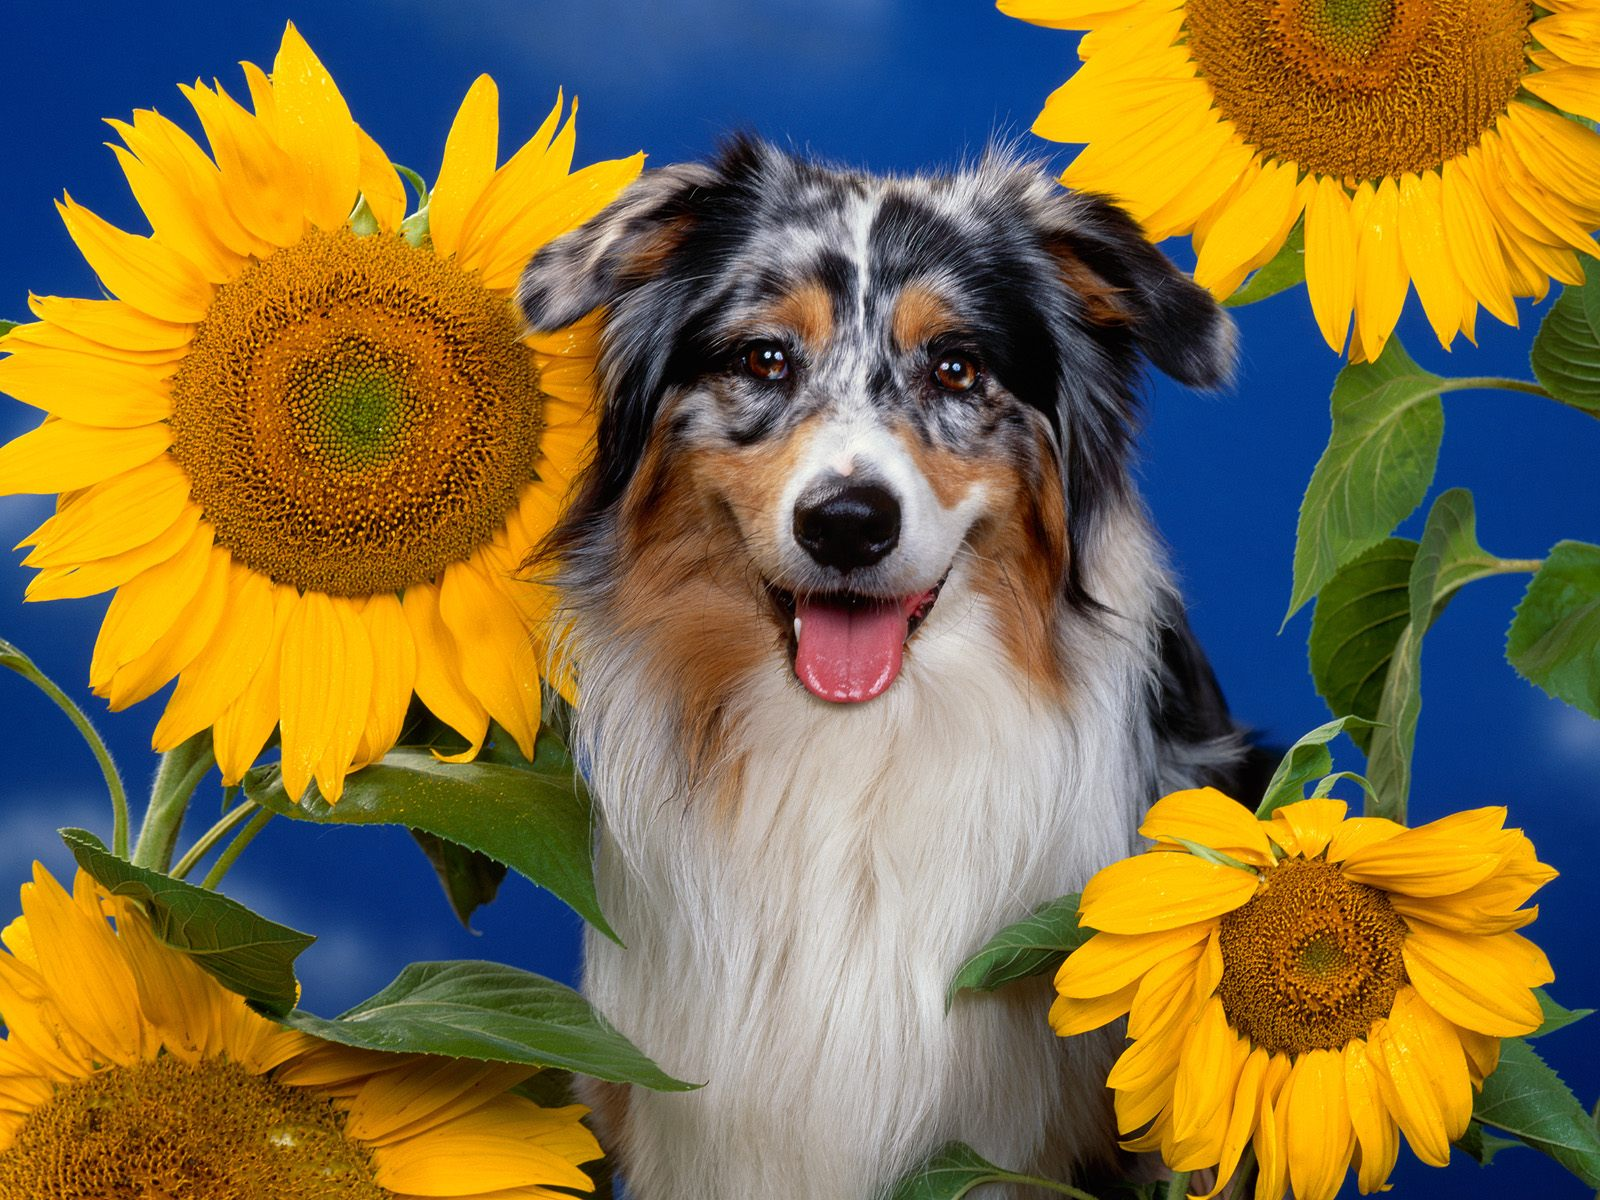 Australian Shepherd Wallpapers Photos Pictures and Backgrounds 1600x1200